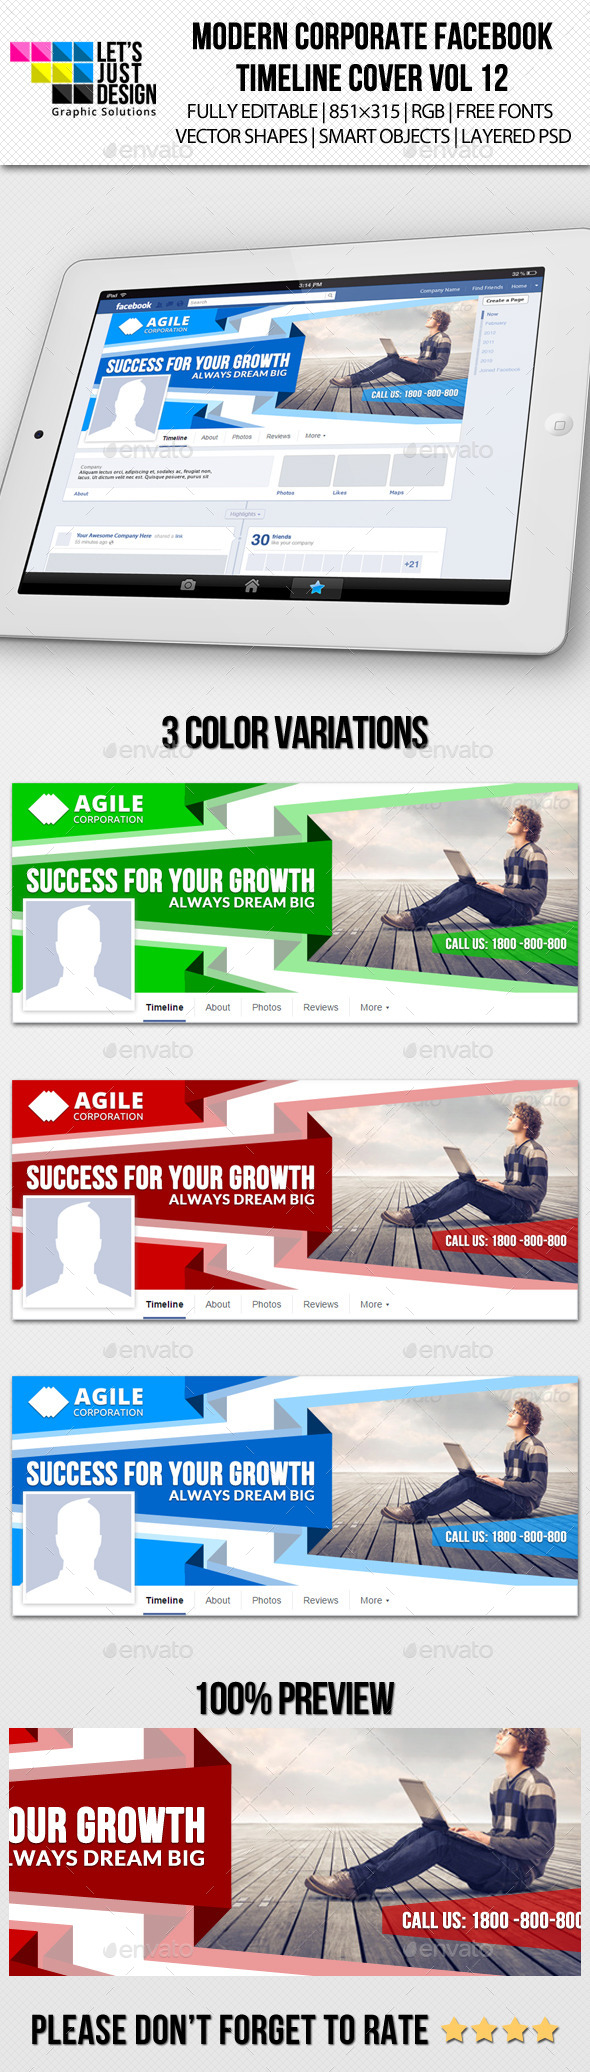 GraphicRiver Modern Corporate Facebook Timeline Cover Vol 12 10257331